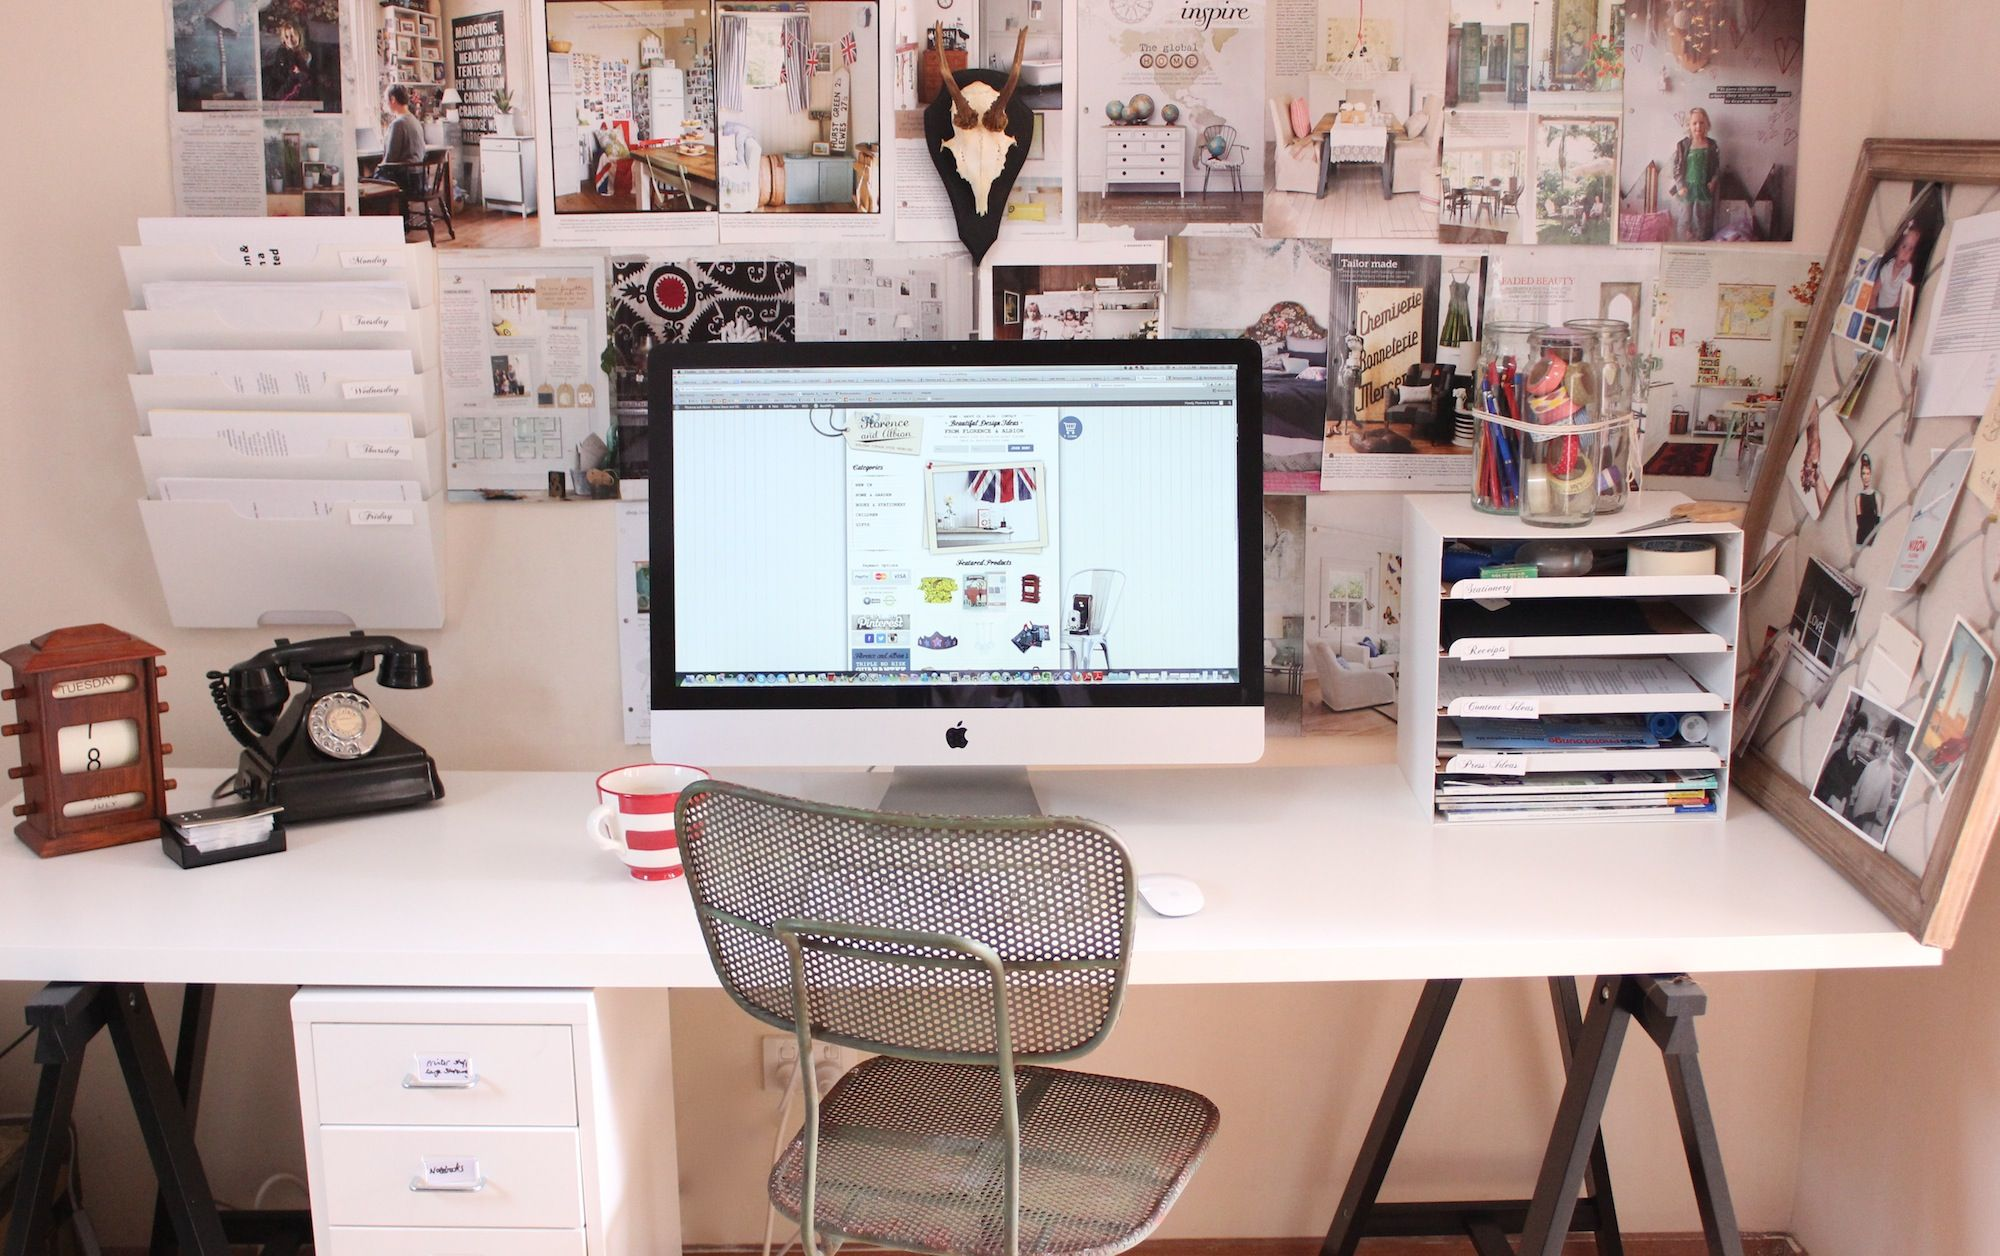 Furniture Small Home Office Organization Eas With Spectacular Home Office Desk With Computer And Cool Photography Decoration On The Wall Cool Home Office ... & Furniture Small Home Office Organization Eas With Spectacular Home ...